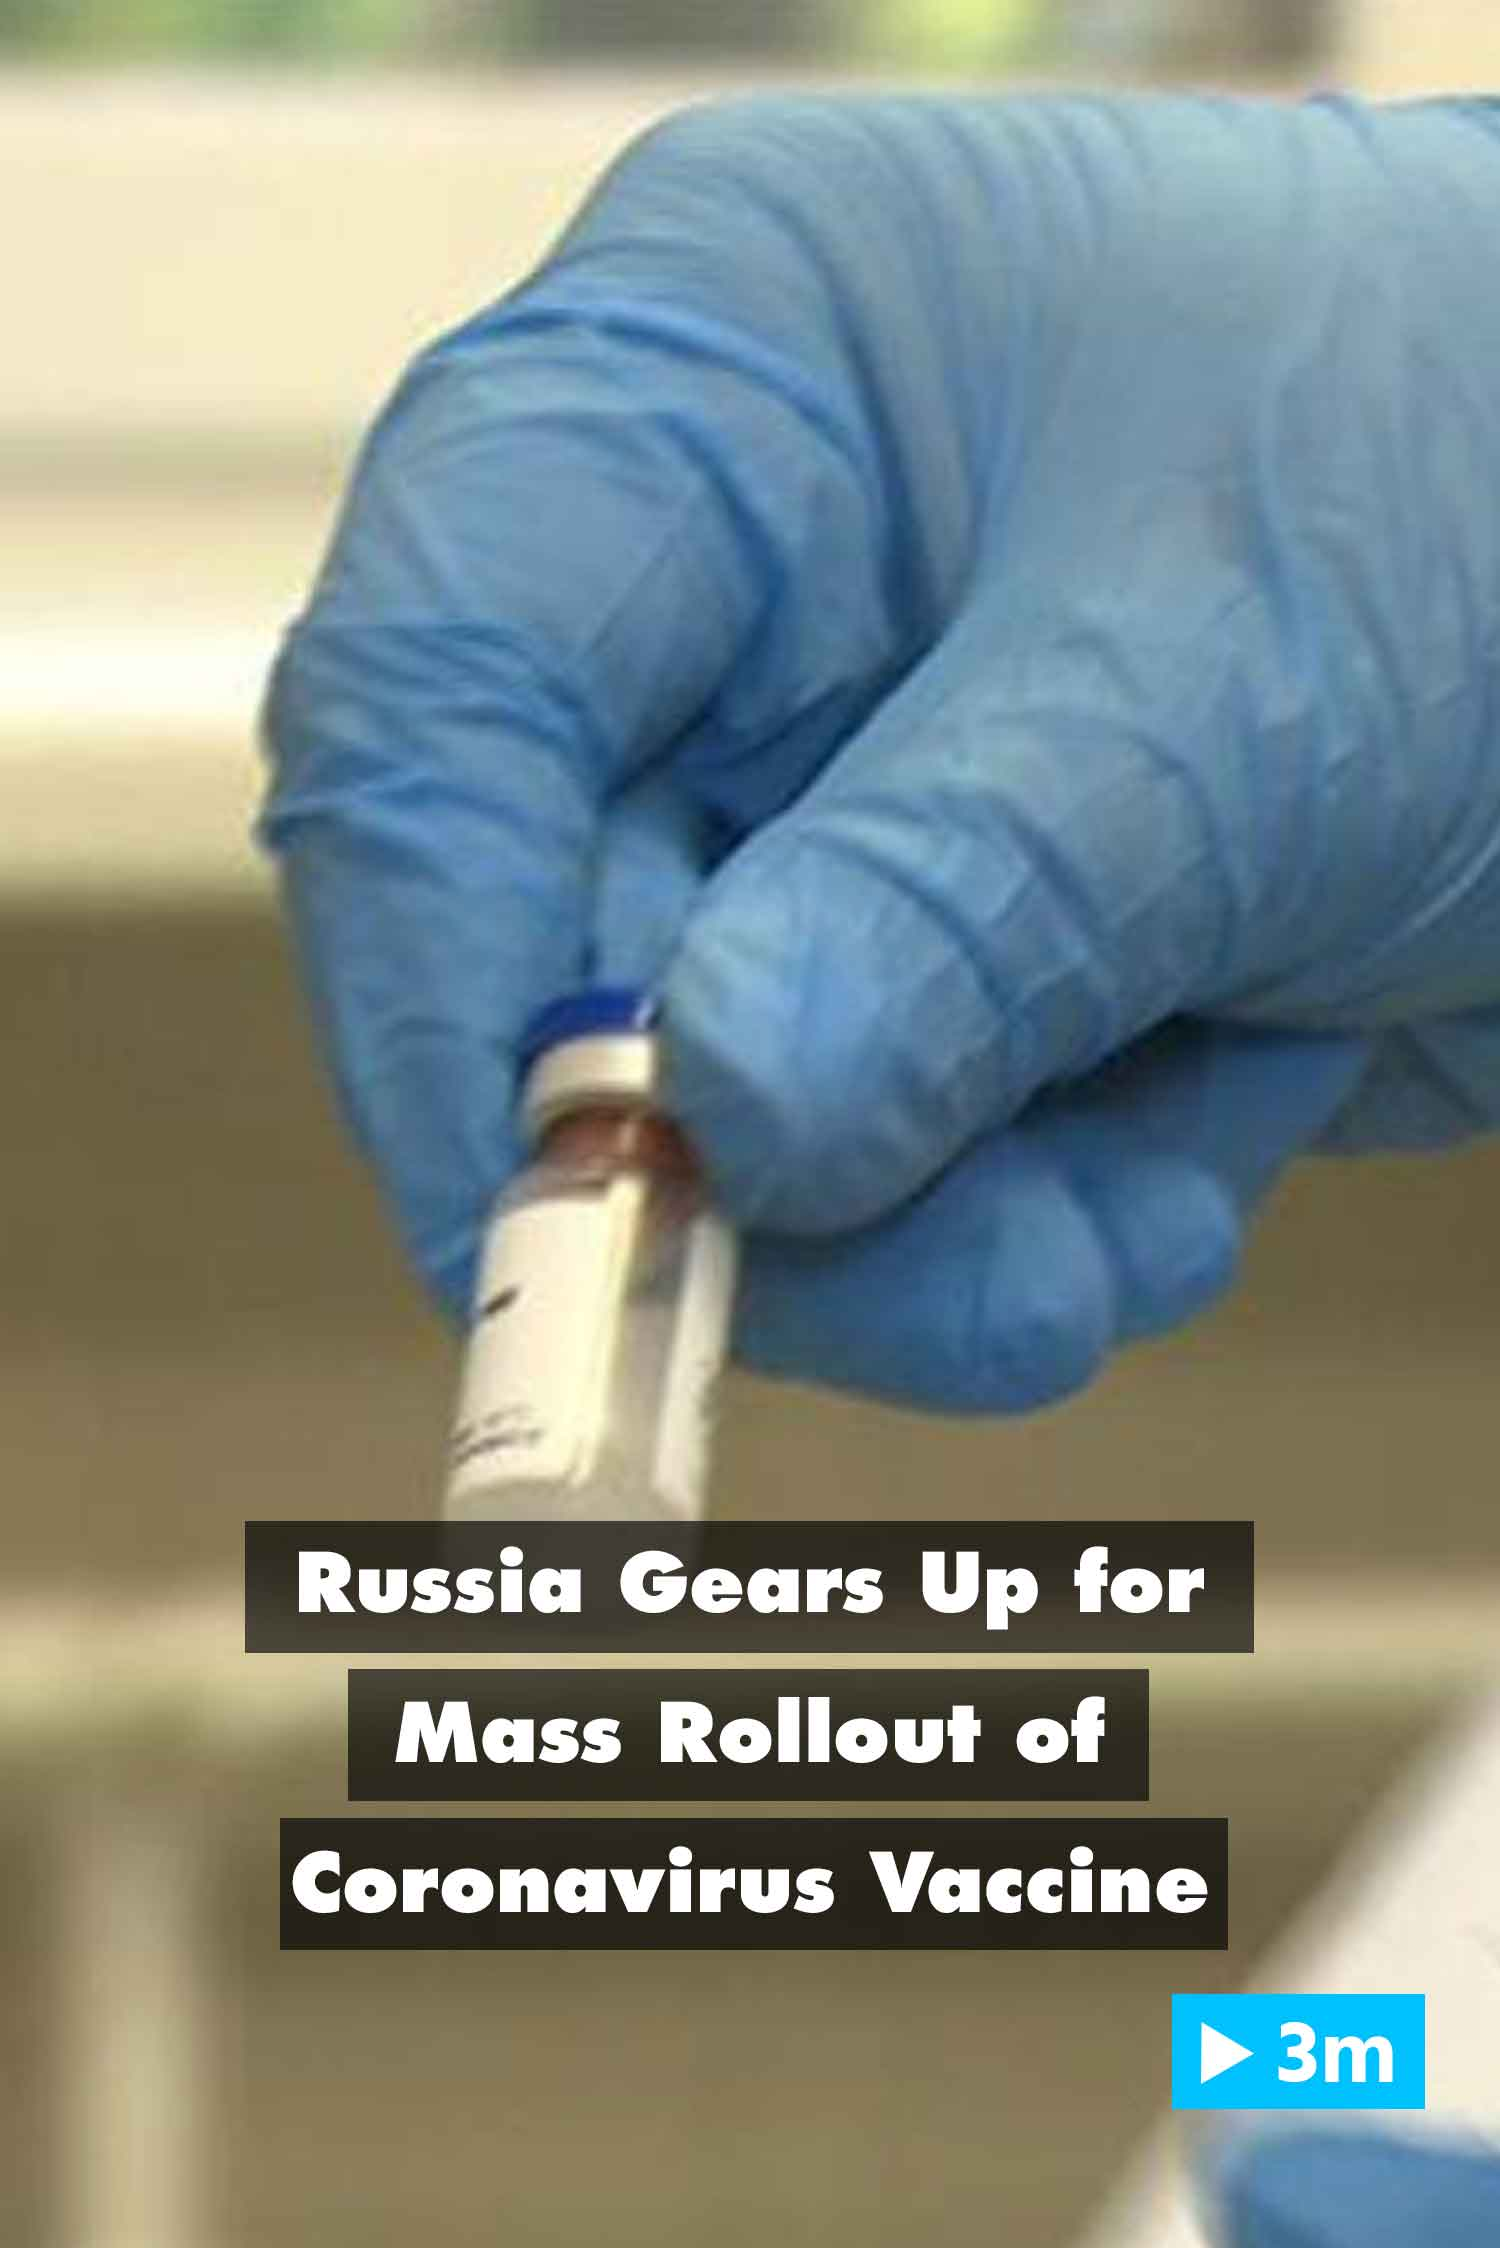 Editor's Choice: Russia gears up for mass rollout of coronavirus vaccine